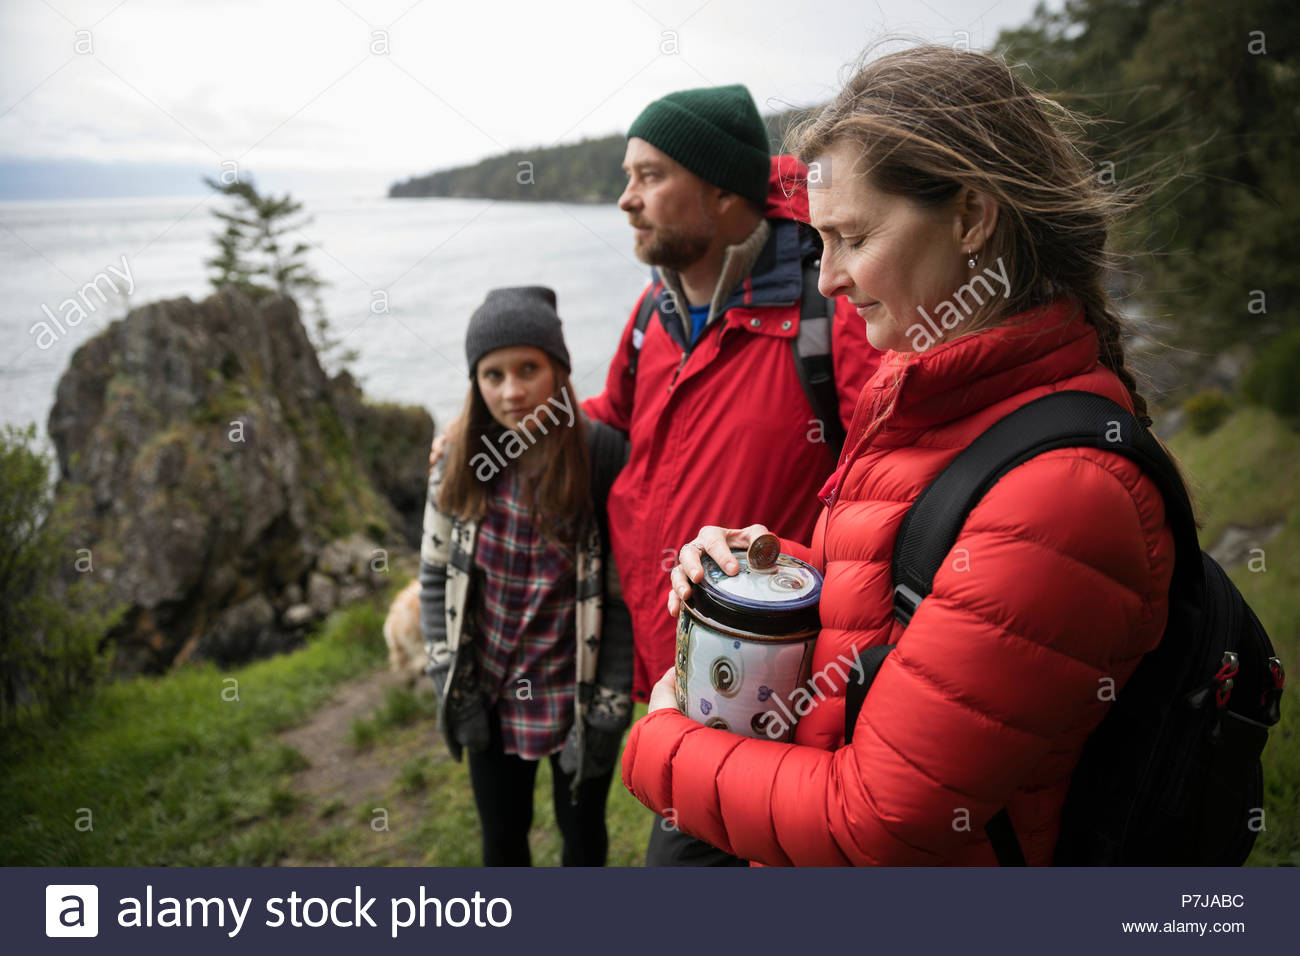 Family with urn spreading ashes on cliff overlooking ocean Stock Photo